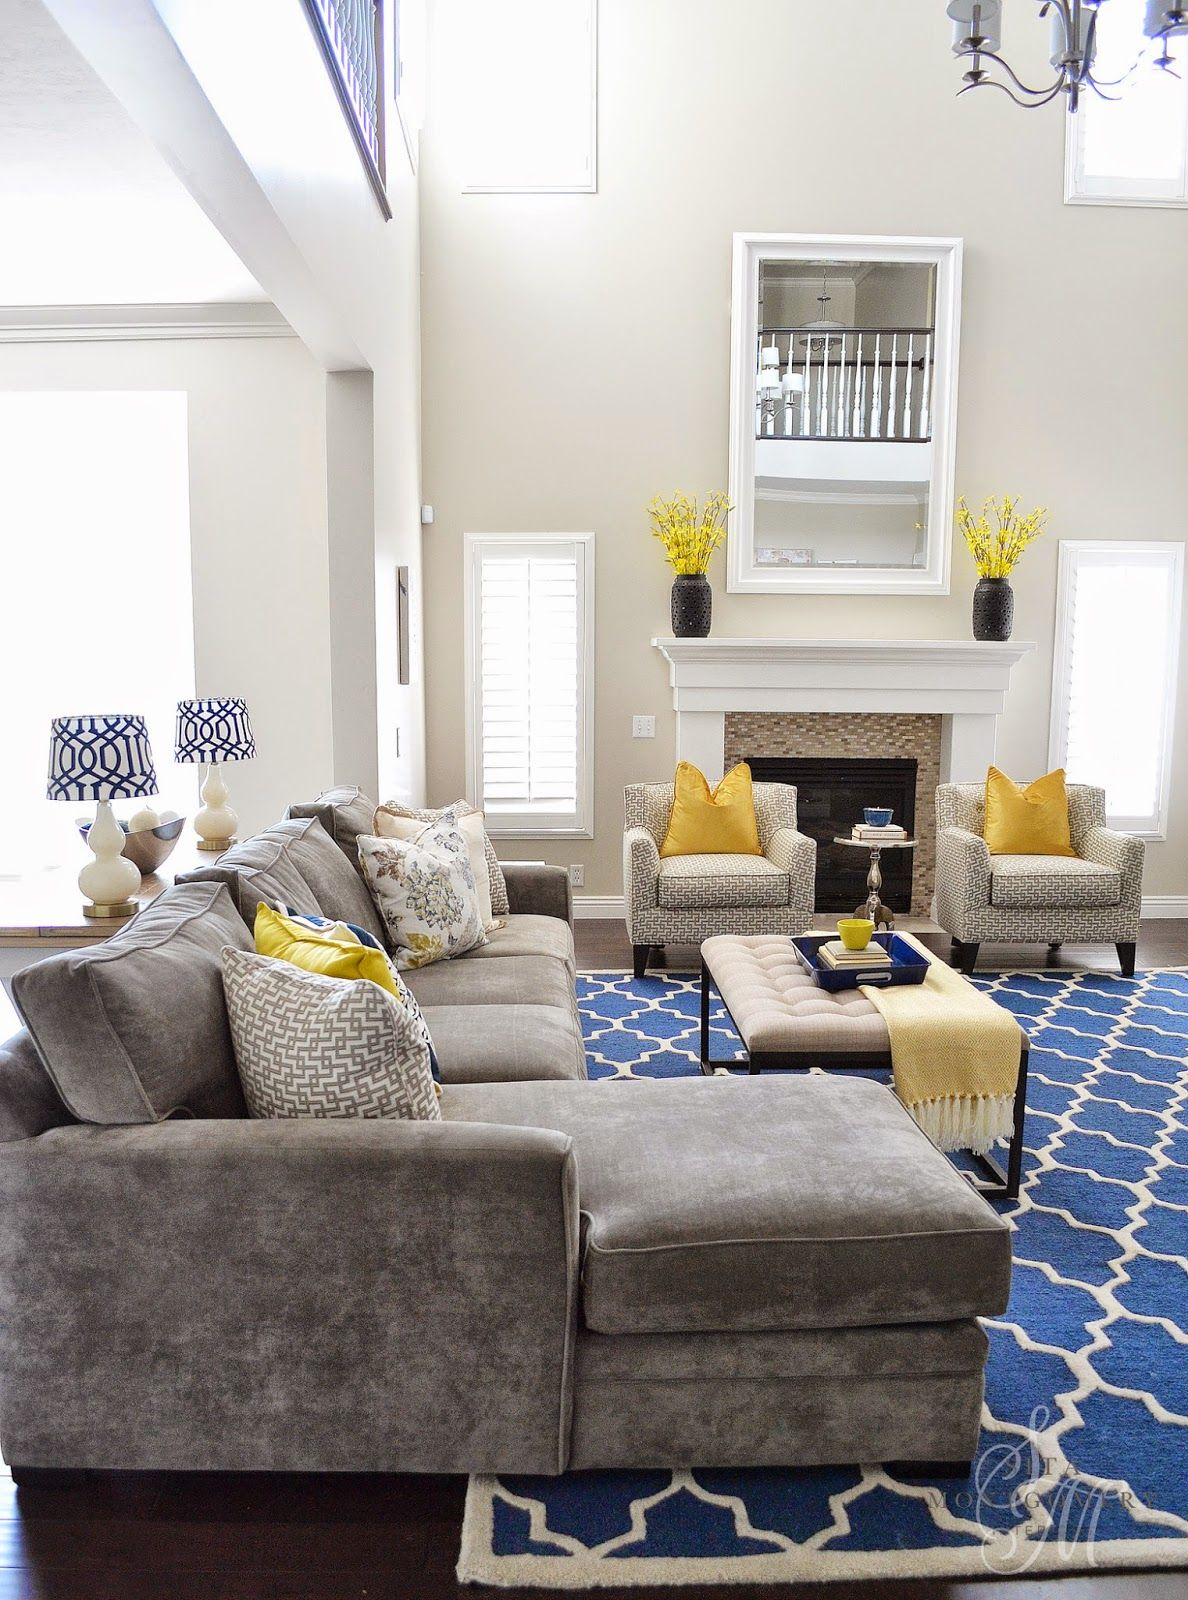 Yellow and blue living room - Sita Montgomery Interiors Client Project Reveal The Summerwood Project Renovation Blue Rug